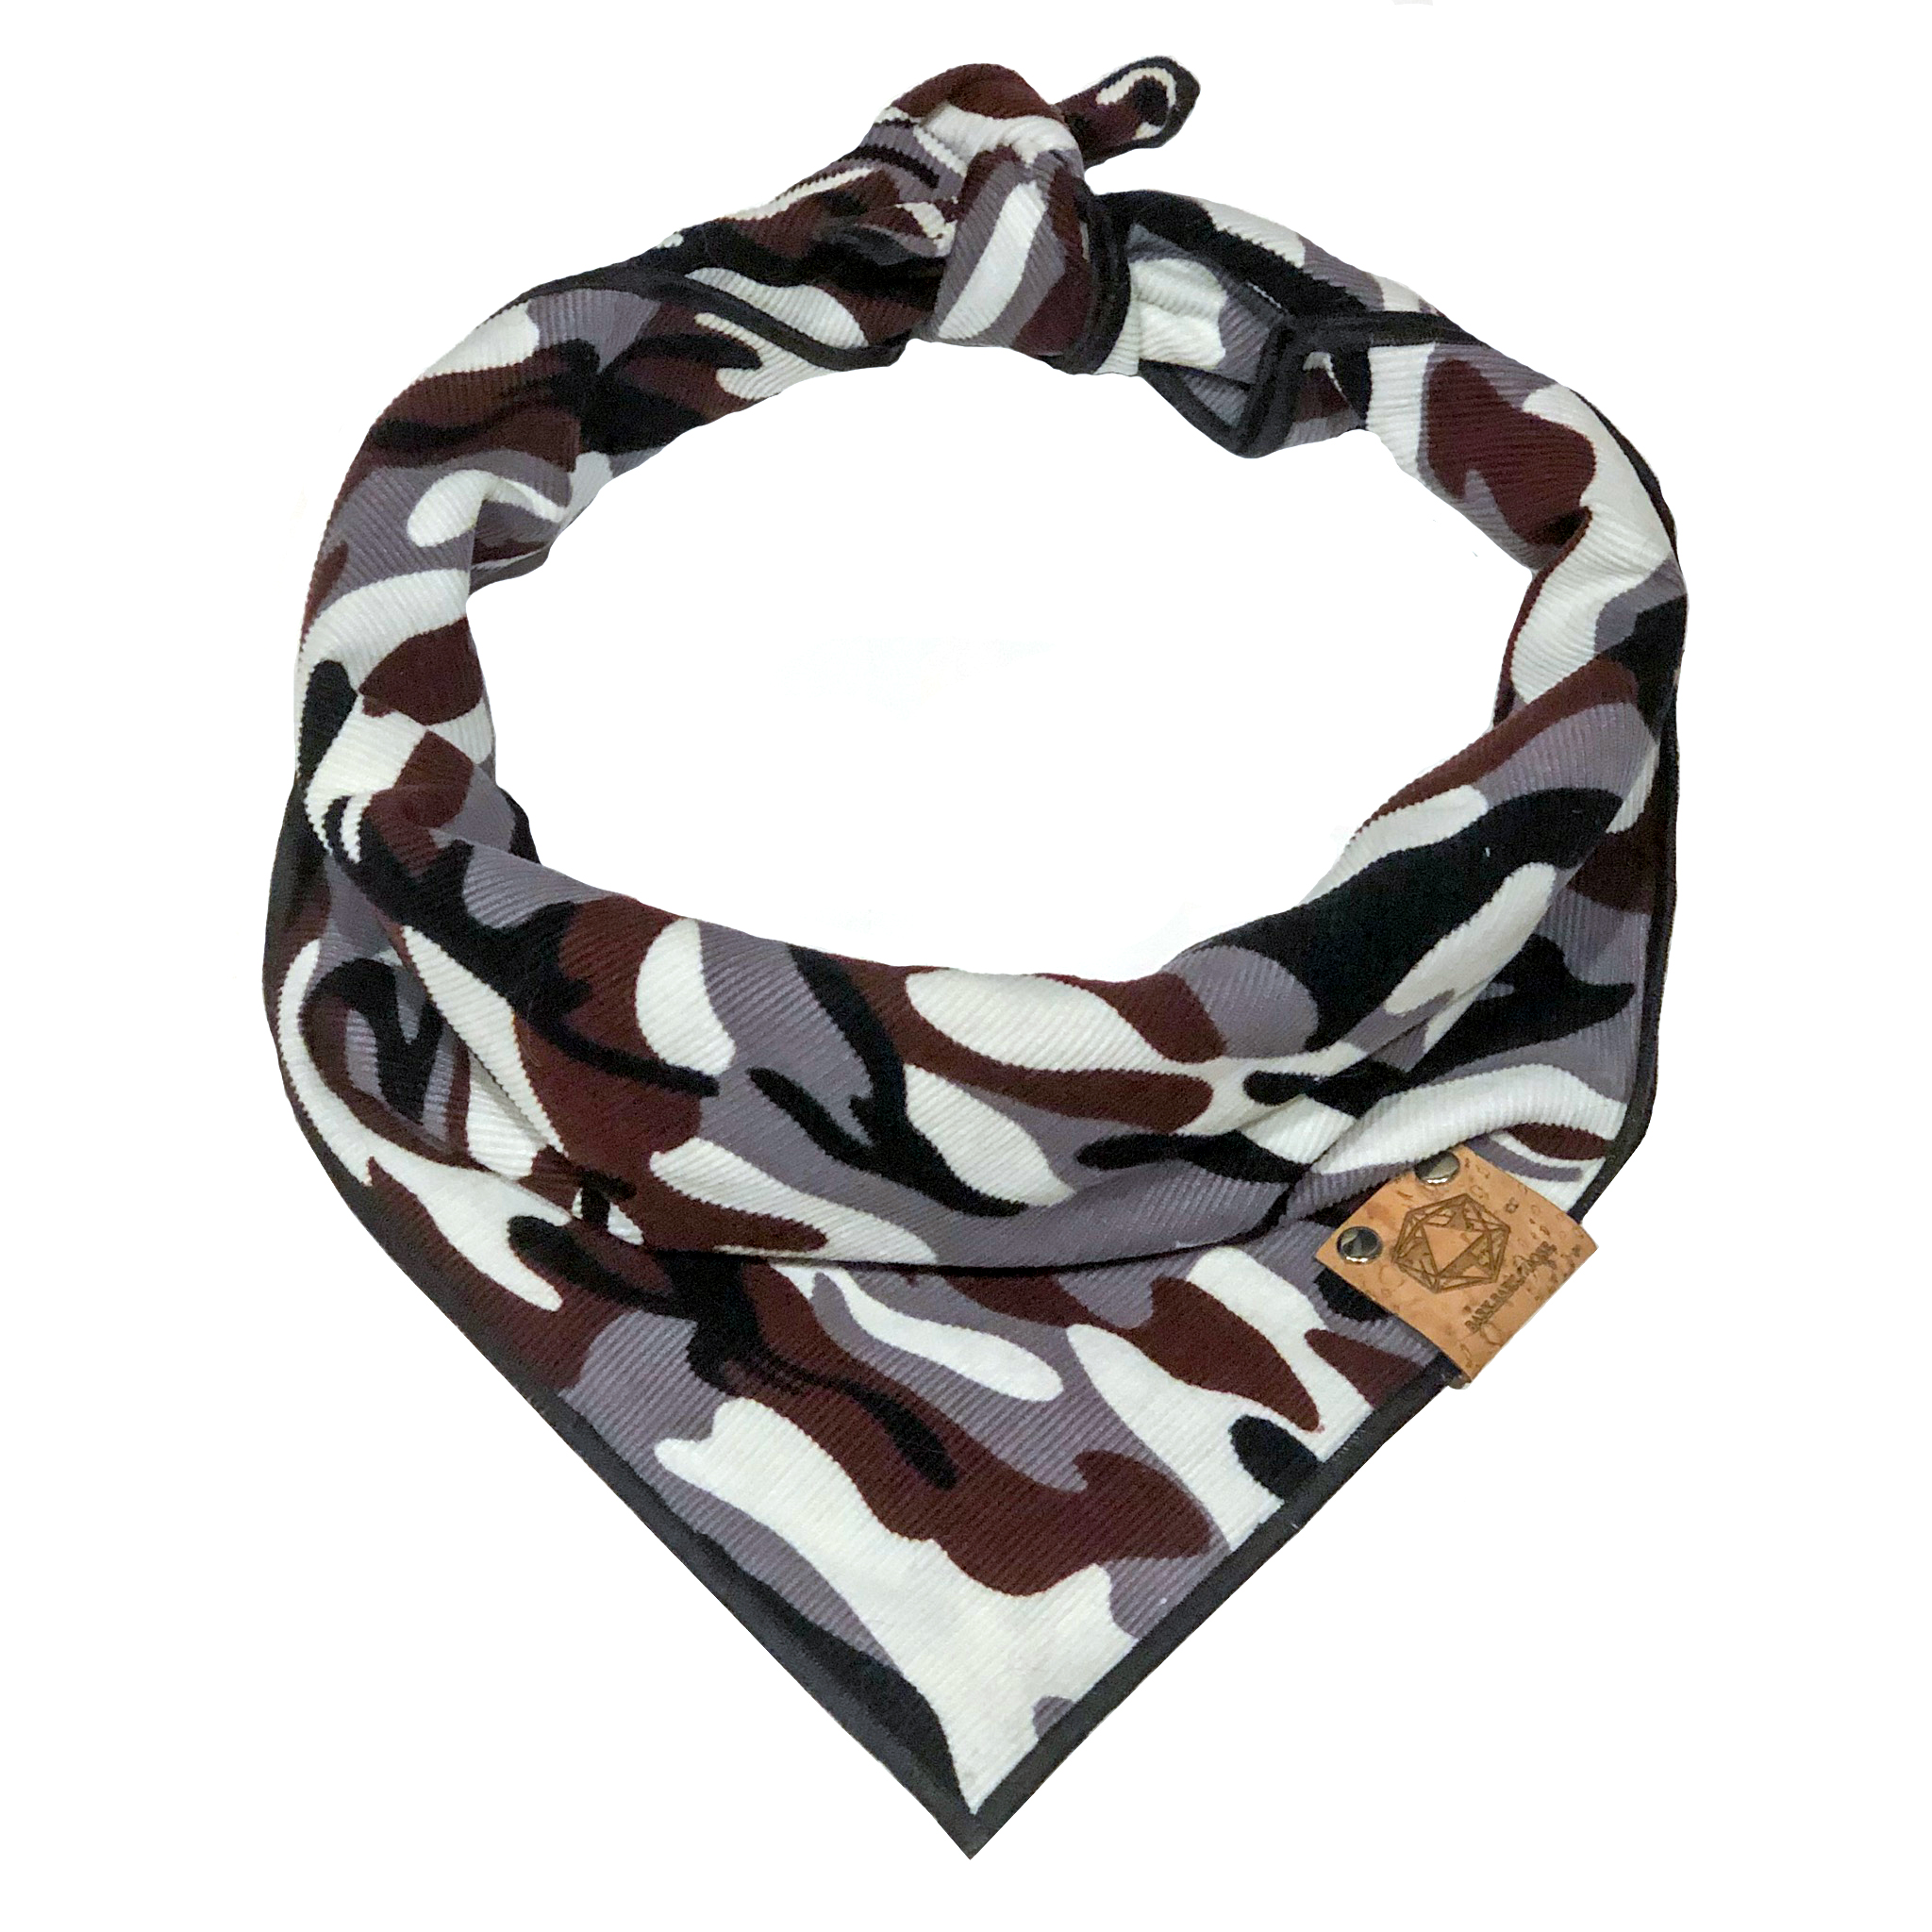 camo-print-dog-bandana-brown-black-grey-and-white.jpg